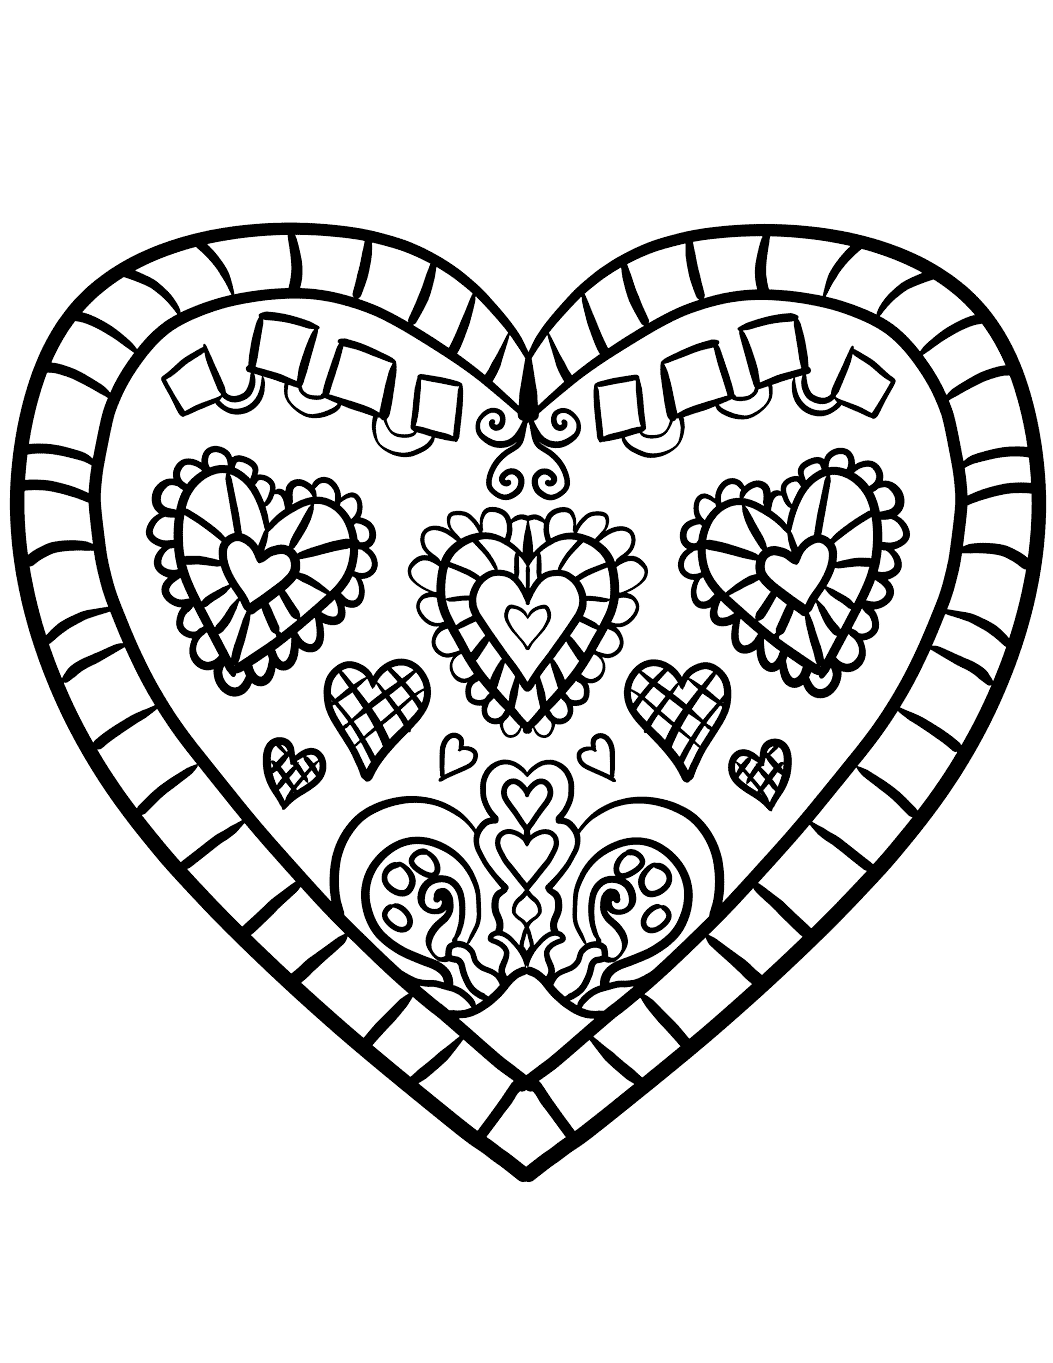 It's just an image of Eloquent Adult Coloring Pages Hearts